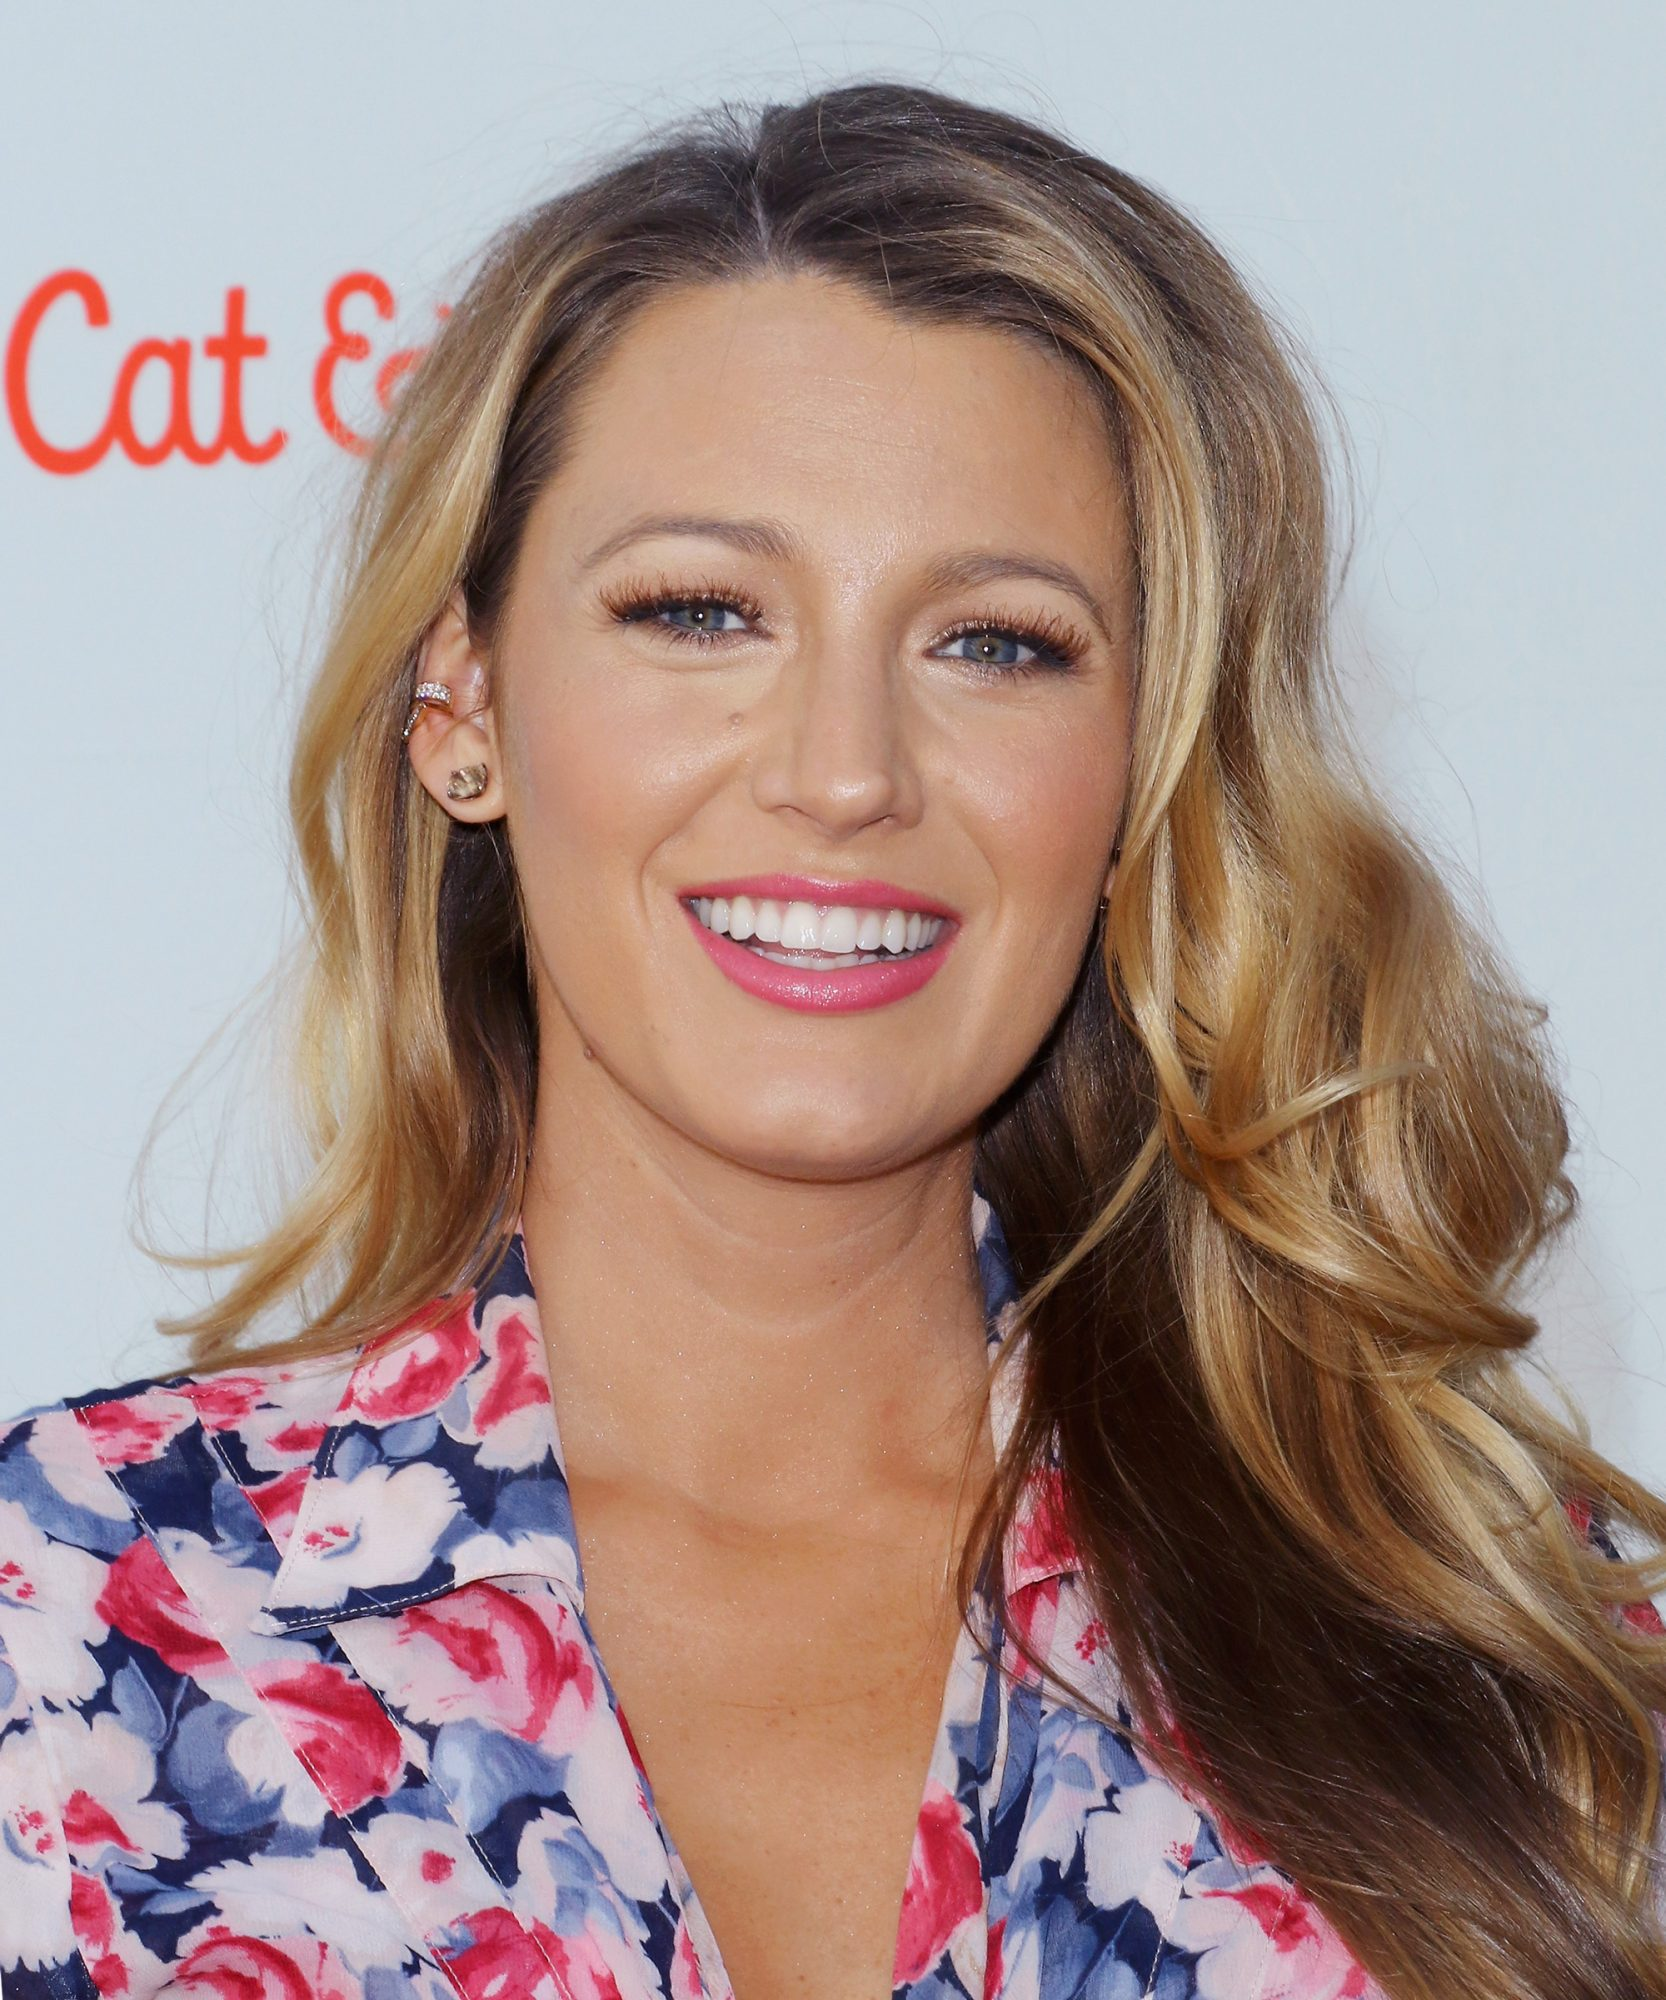 Does Blake Lively Look Like a Muppet in This Selfie? She Thinks So